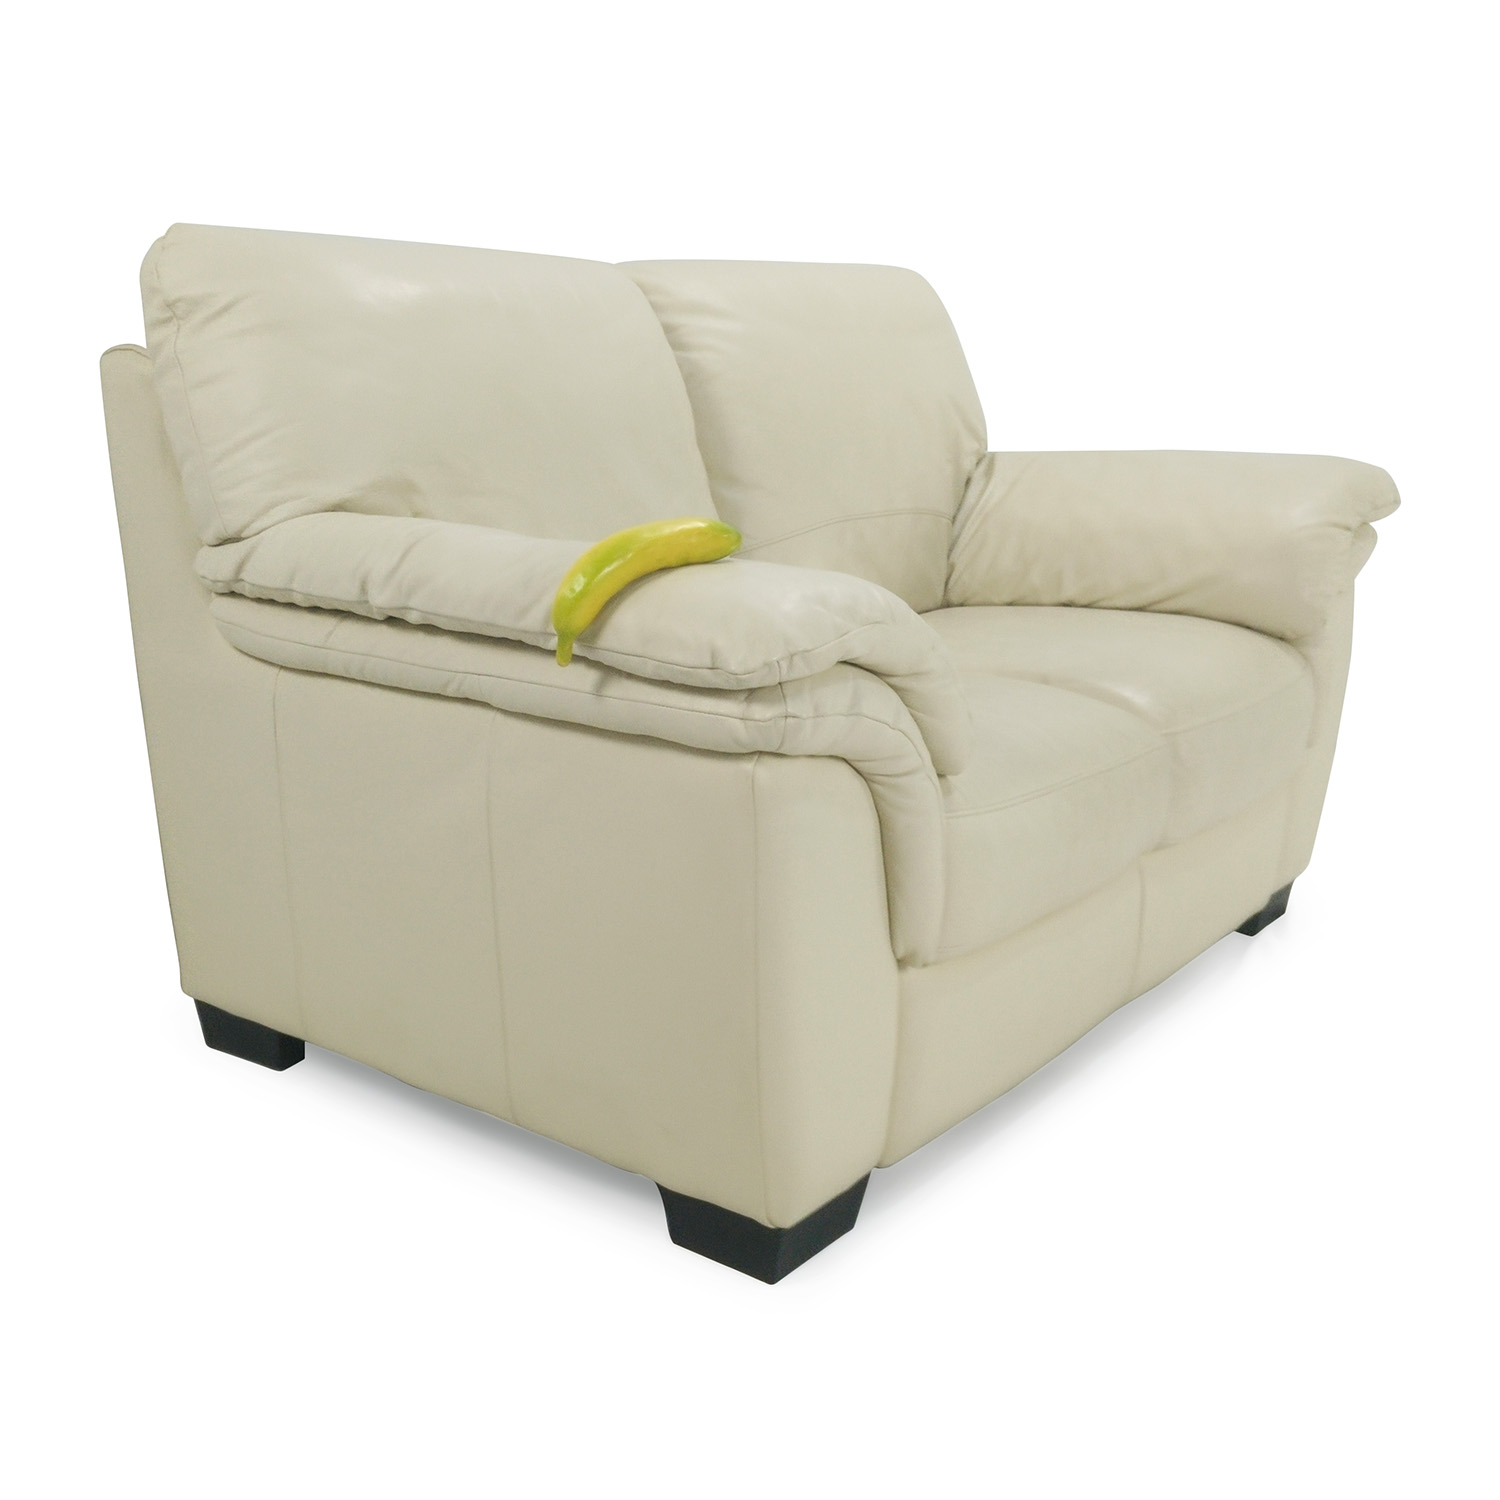 italsofa leather barrel chair 4 seater sofas sale 30 off natuzzi white loveseat